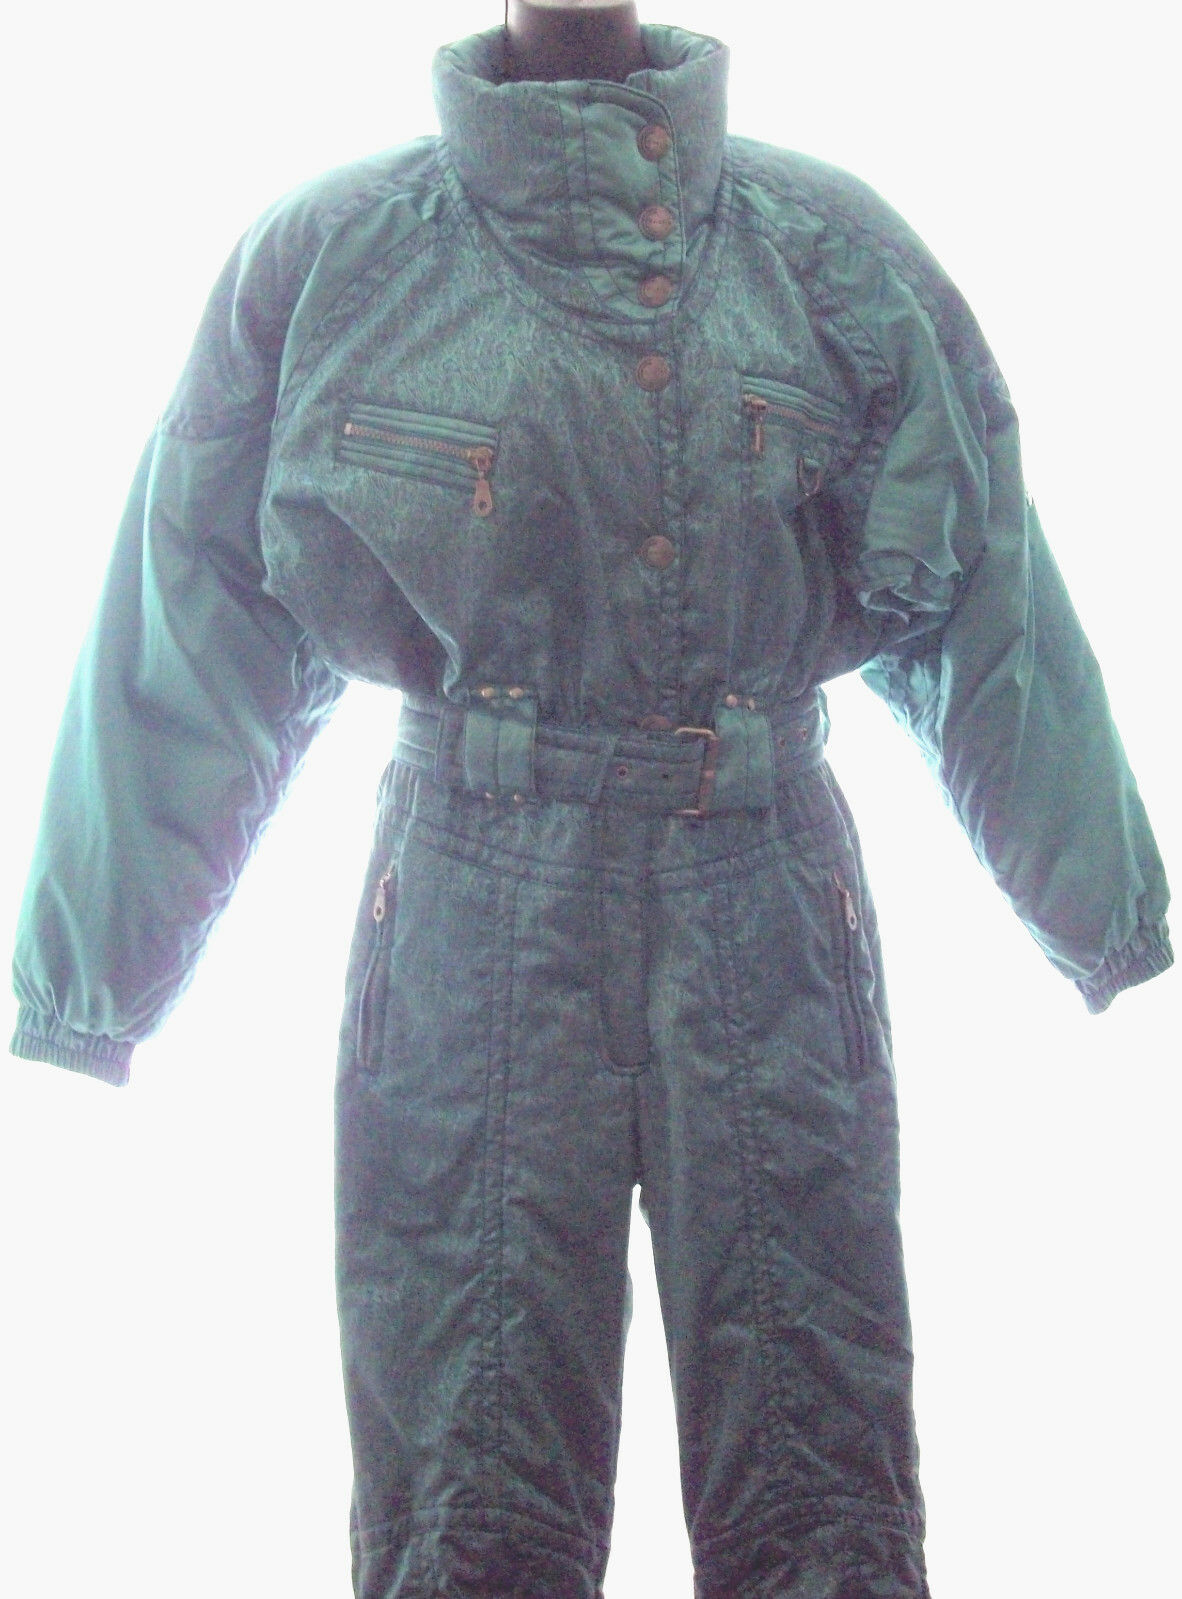 WOMENS S KAELIN Solar Power Vintage 80s 1 pc Mint Green Insulated Ski Snow Suit